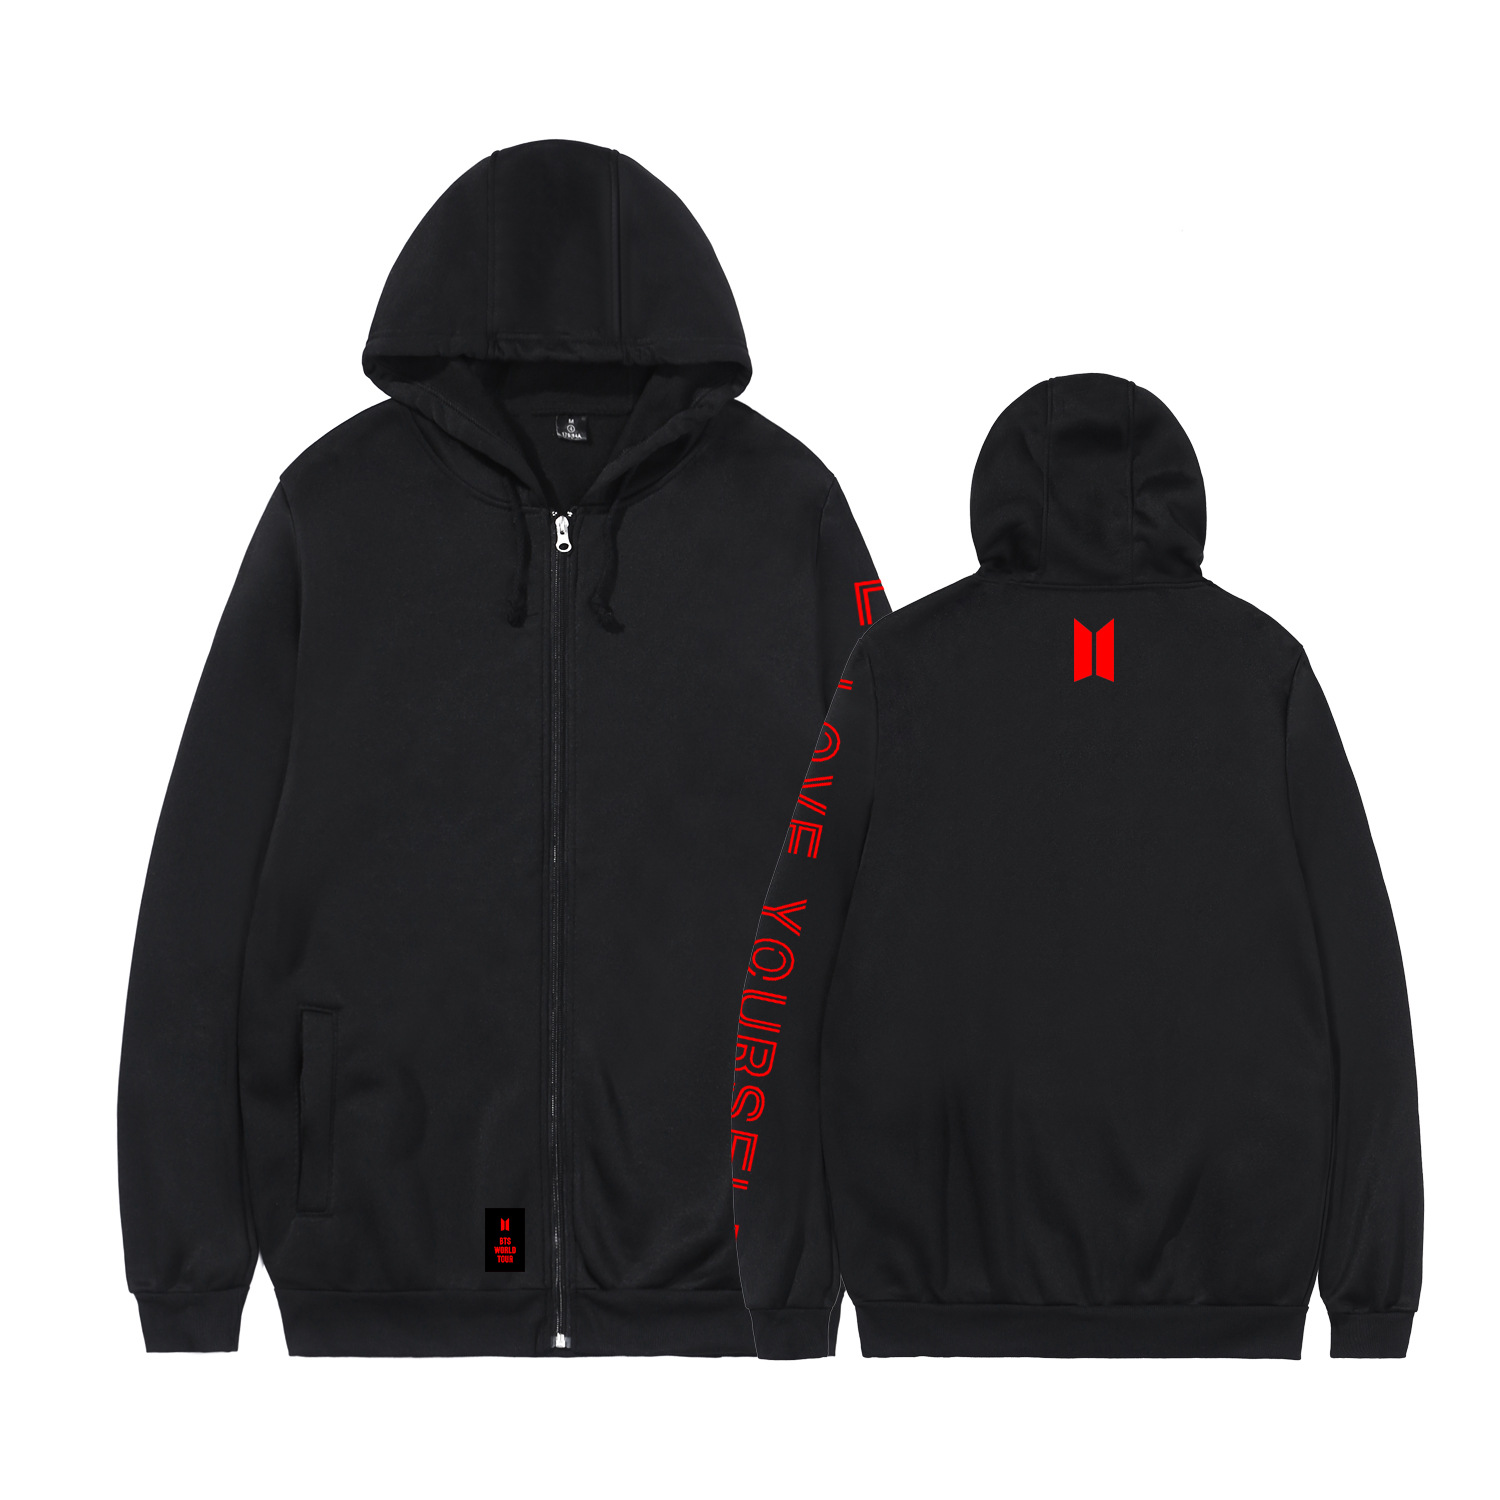 BTS Concert Celebrity Style Bulletproof Boys Related Products Zipper Hoodie Casual Men And Women Couples Coat